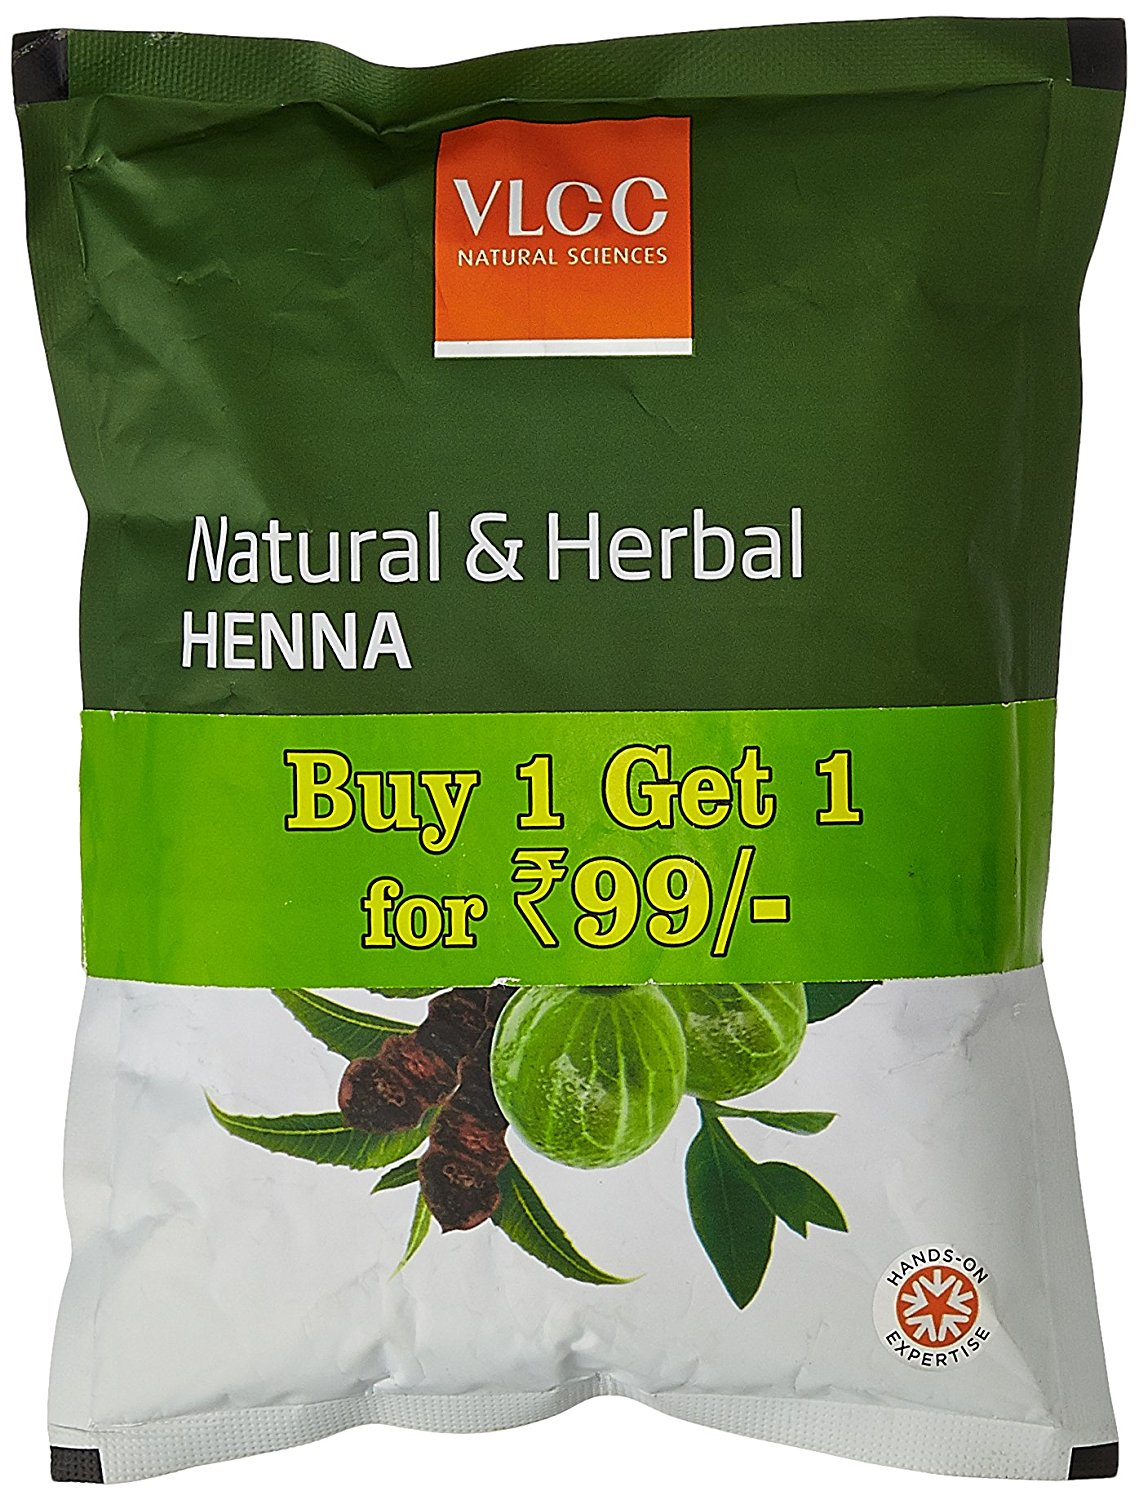 Pantry Item:-VLCC Heena Offer at Just Rs. 64 (Pack of 2) + + Free Shipping discount deal